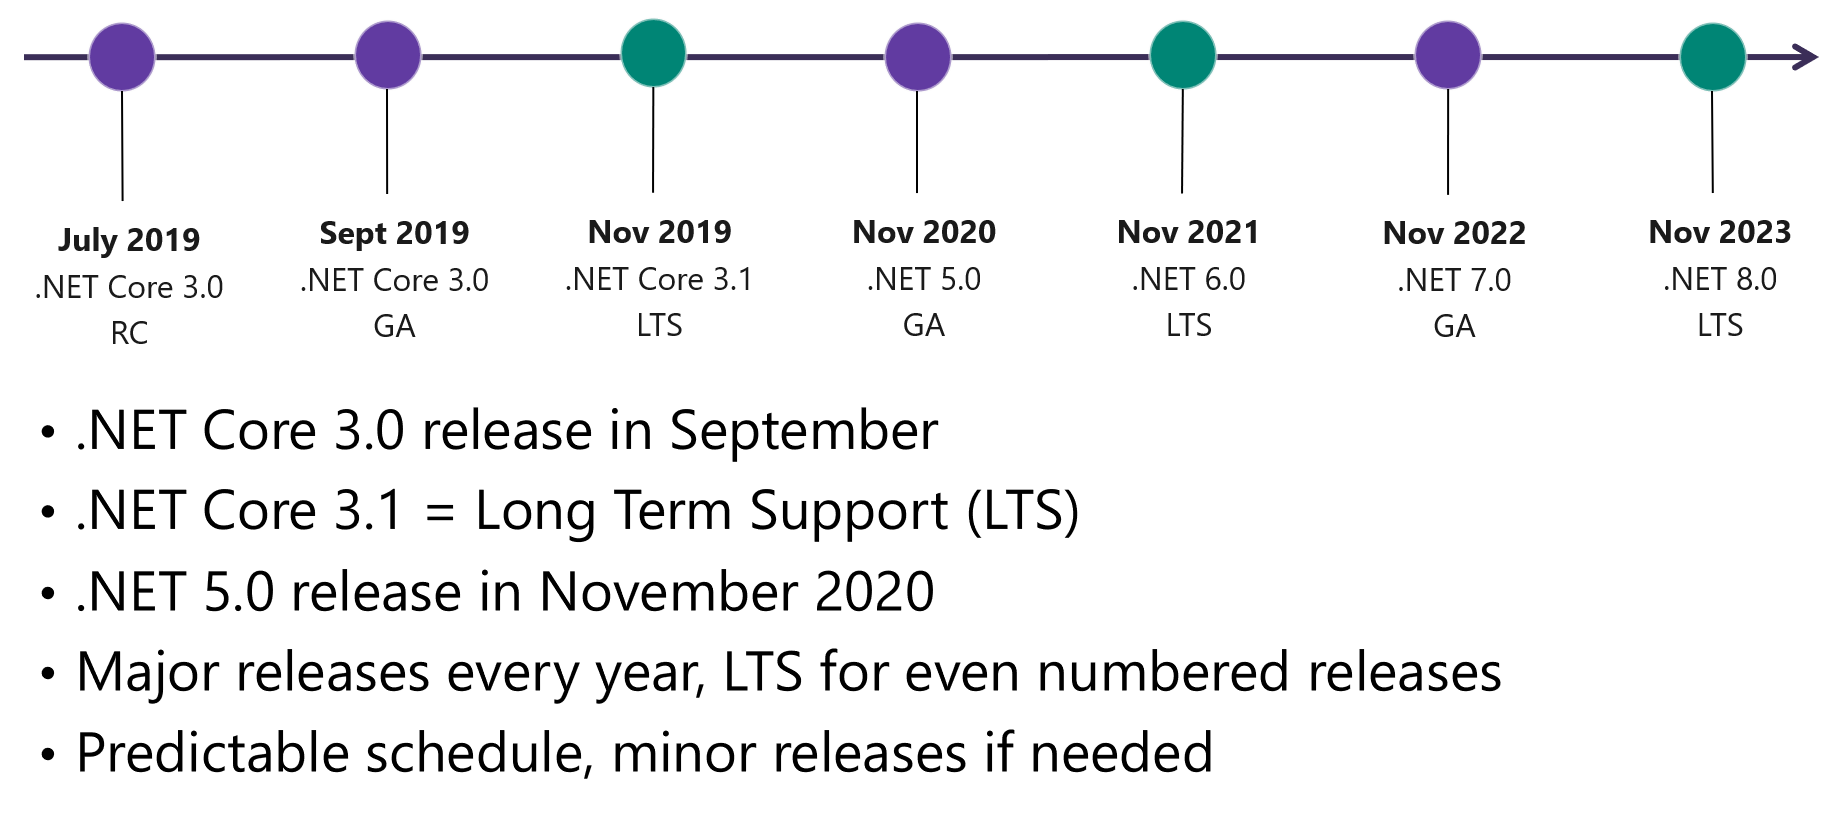 The .NET Schedule of releases until 2023